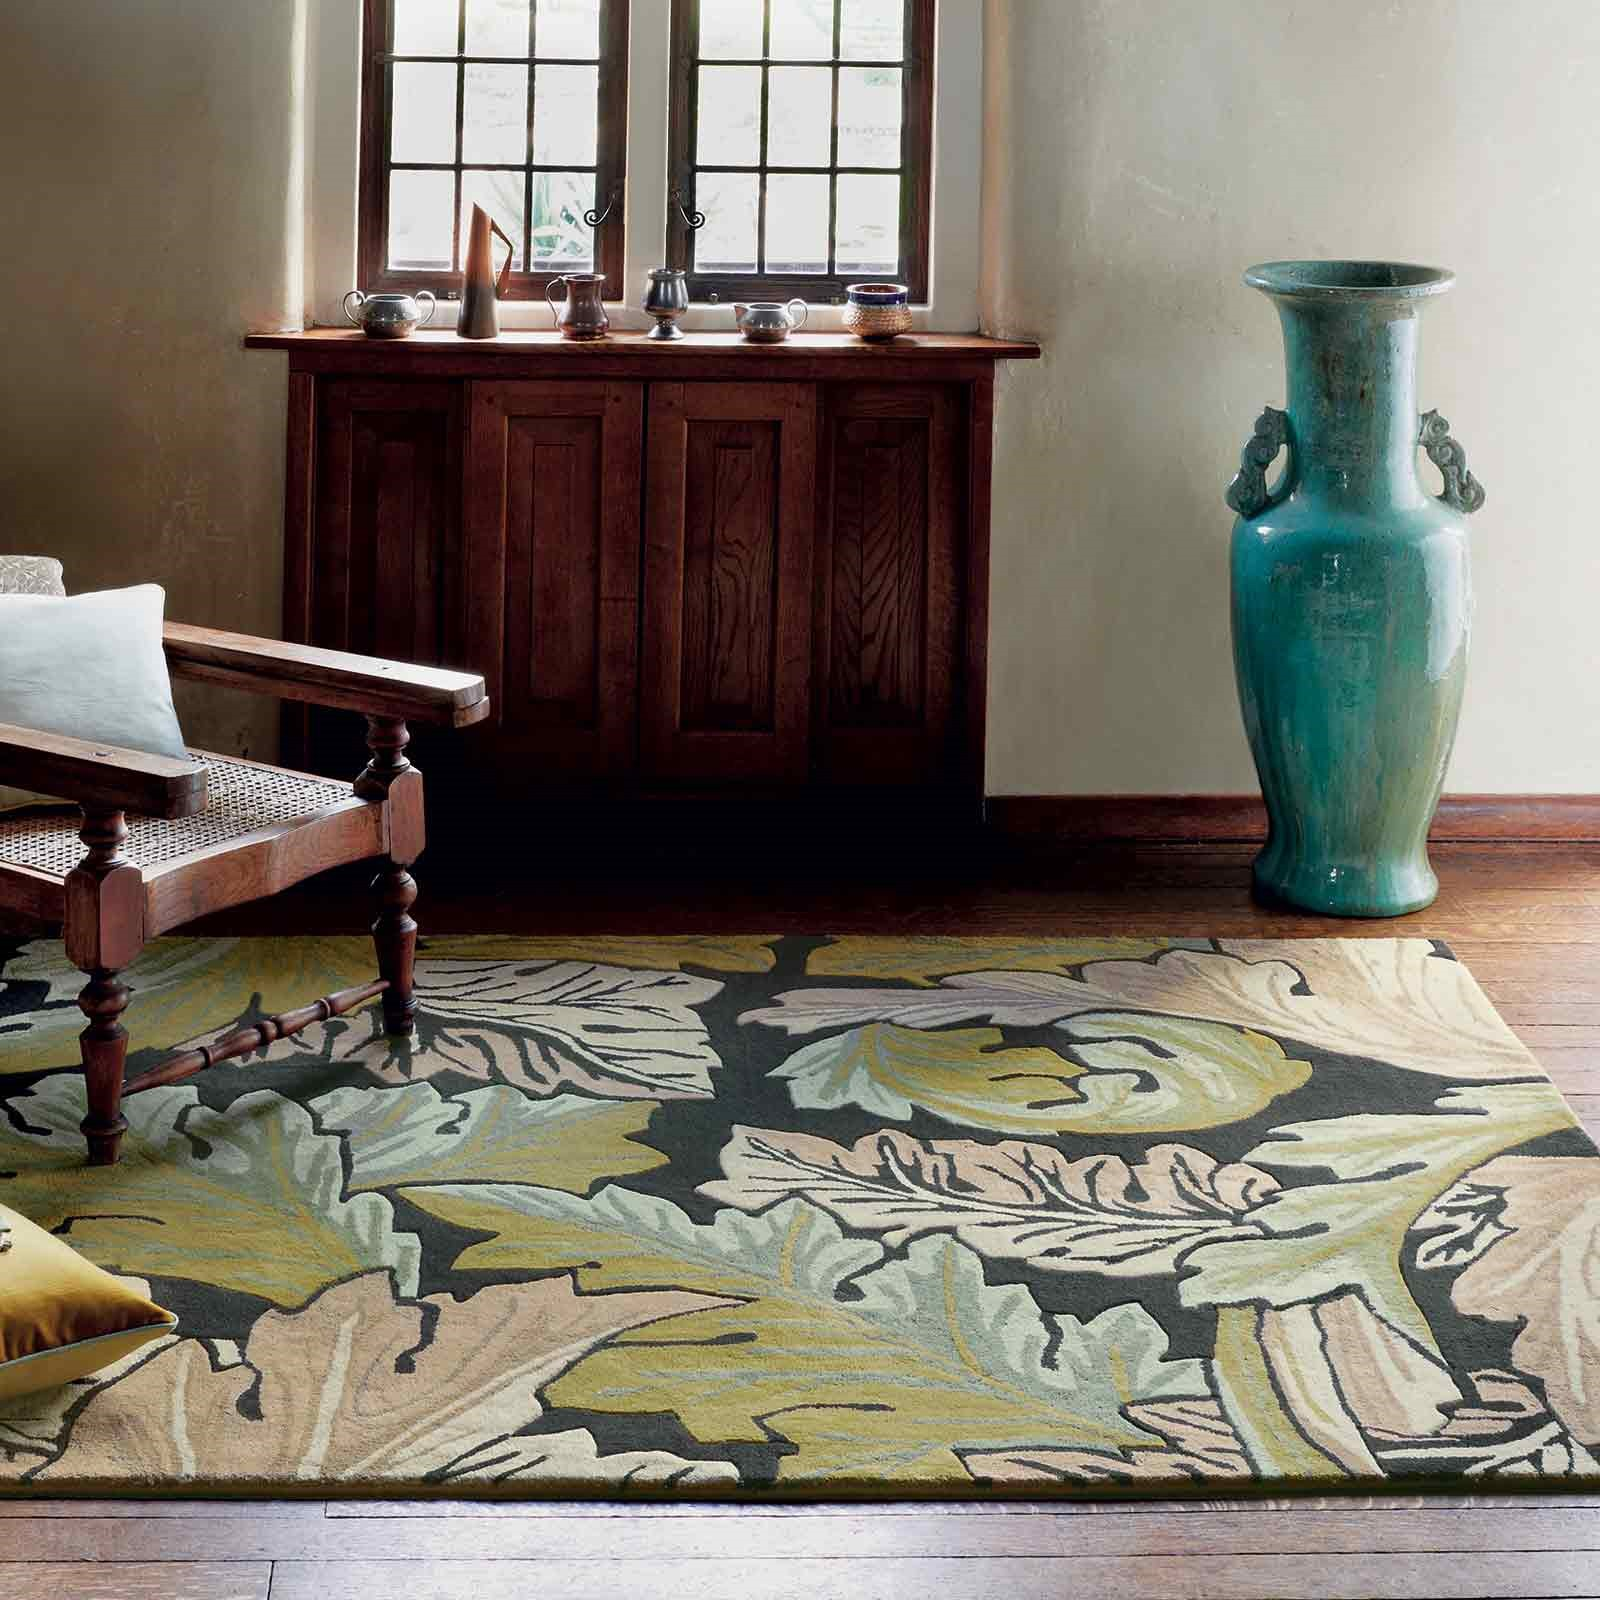 Top 10 Designer Rug Brands of 2015